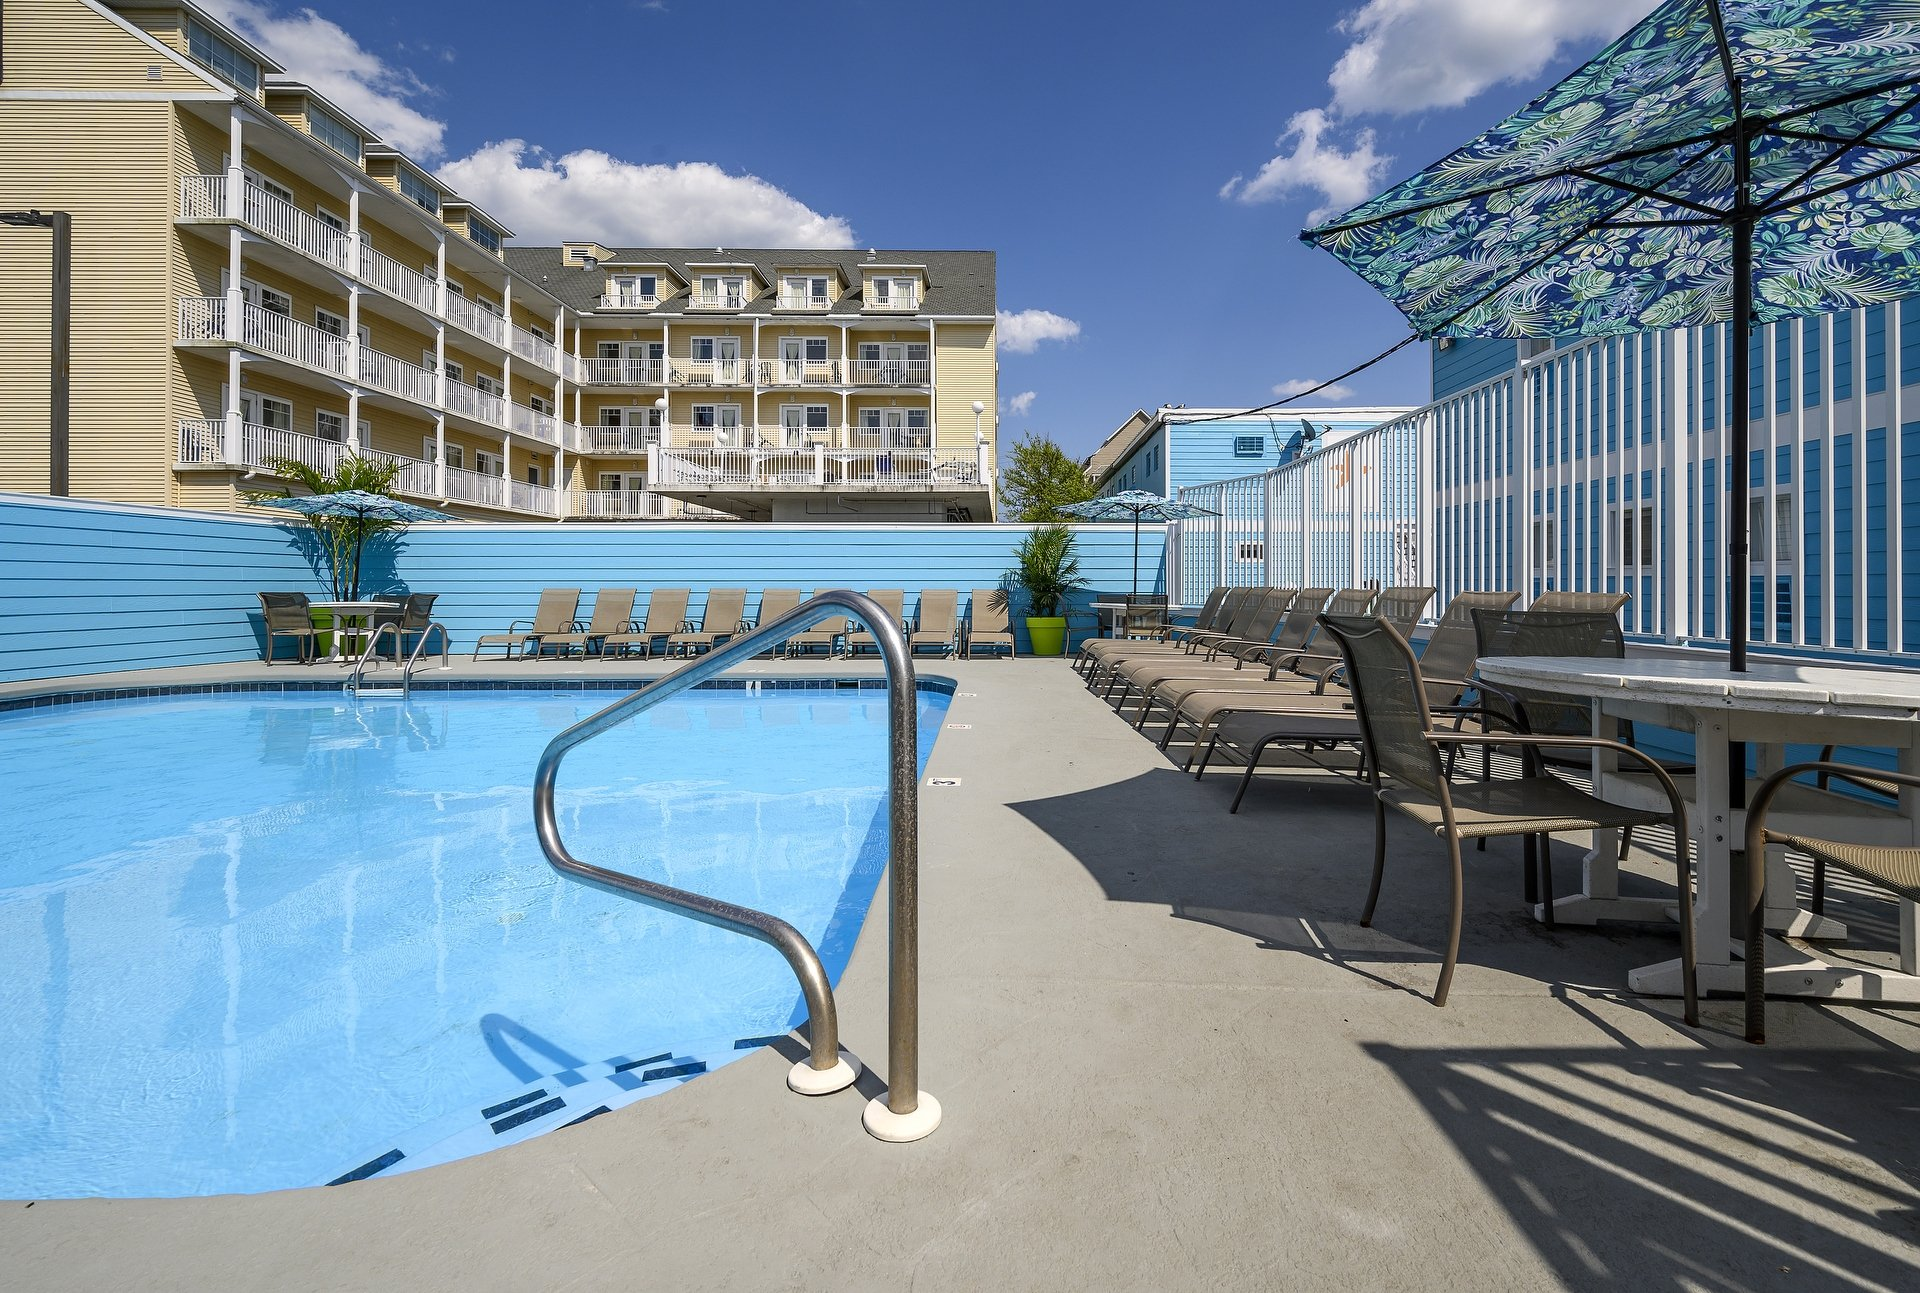 Ocean City Hotels Cheap Prices